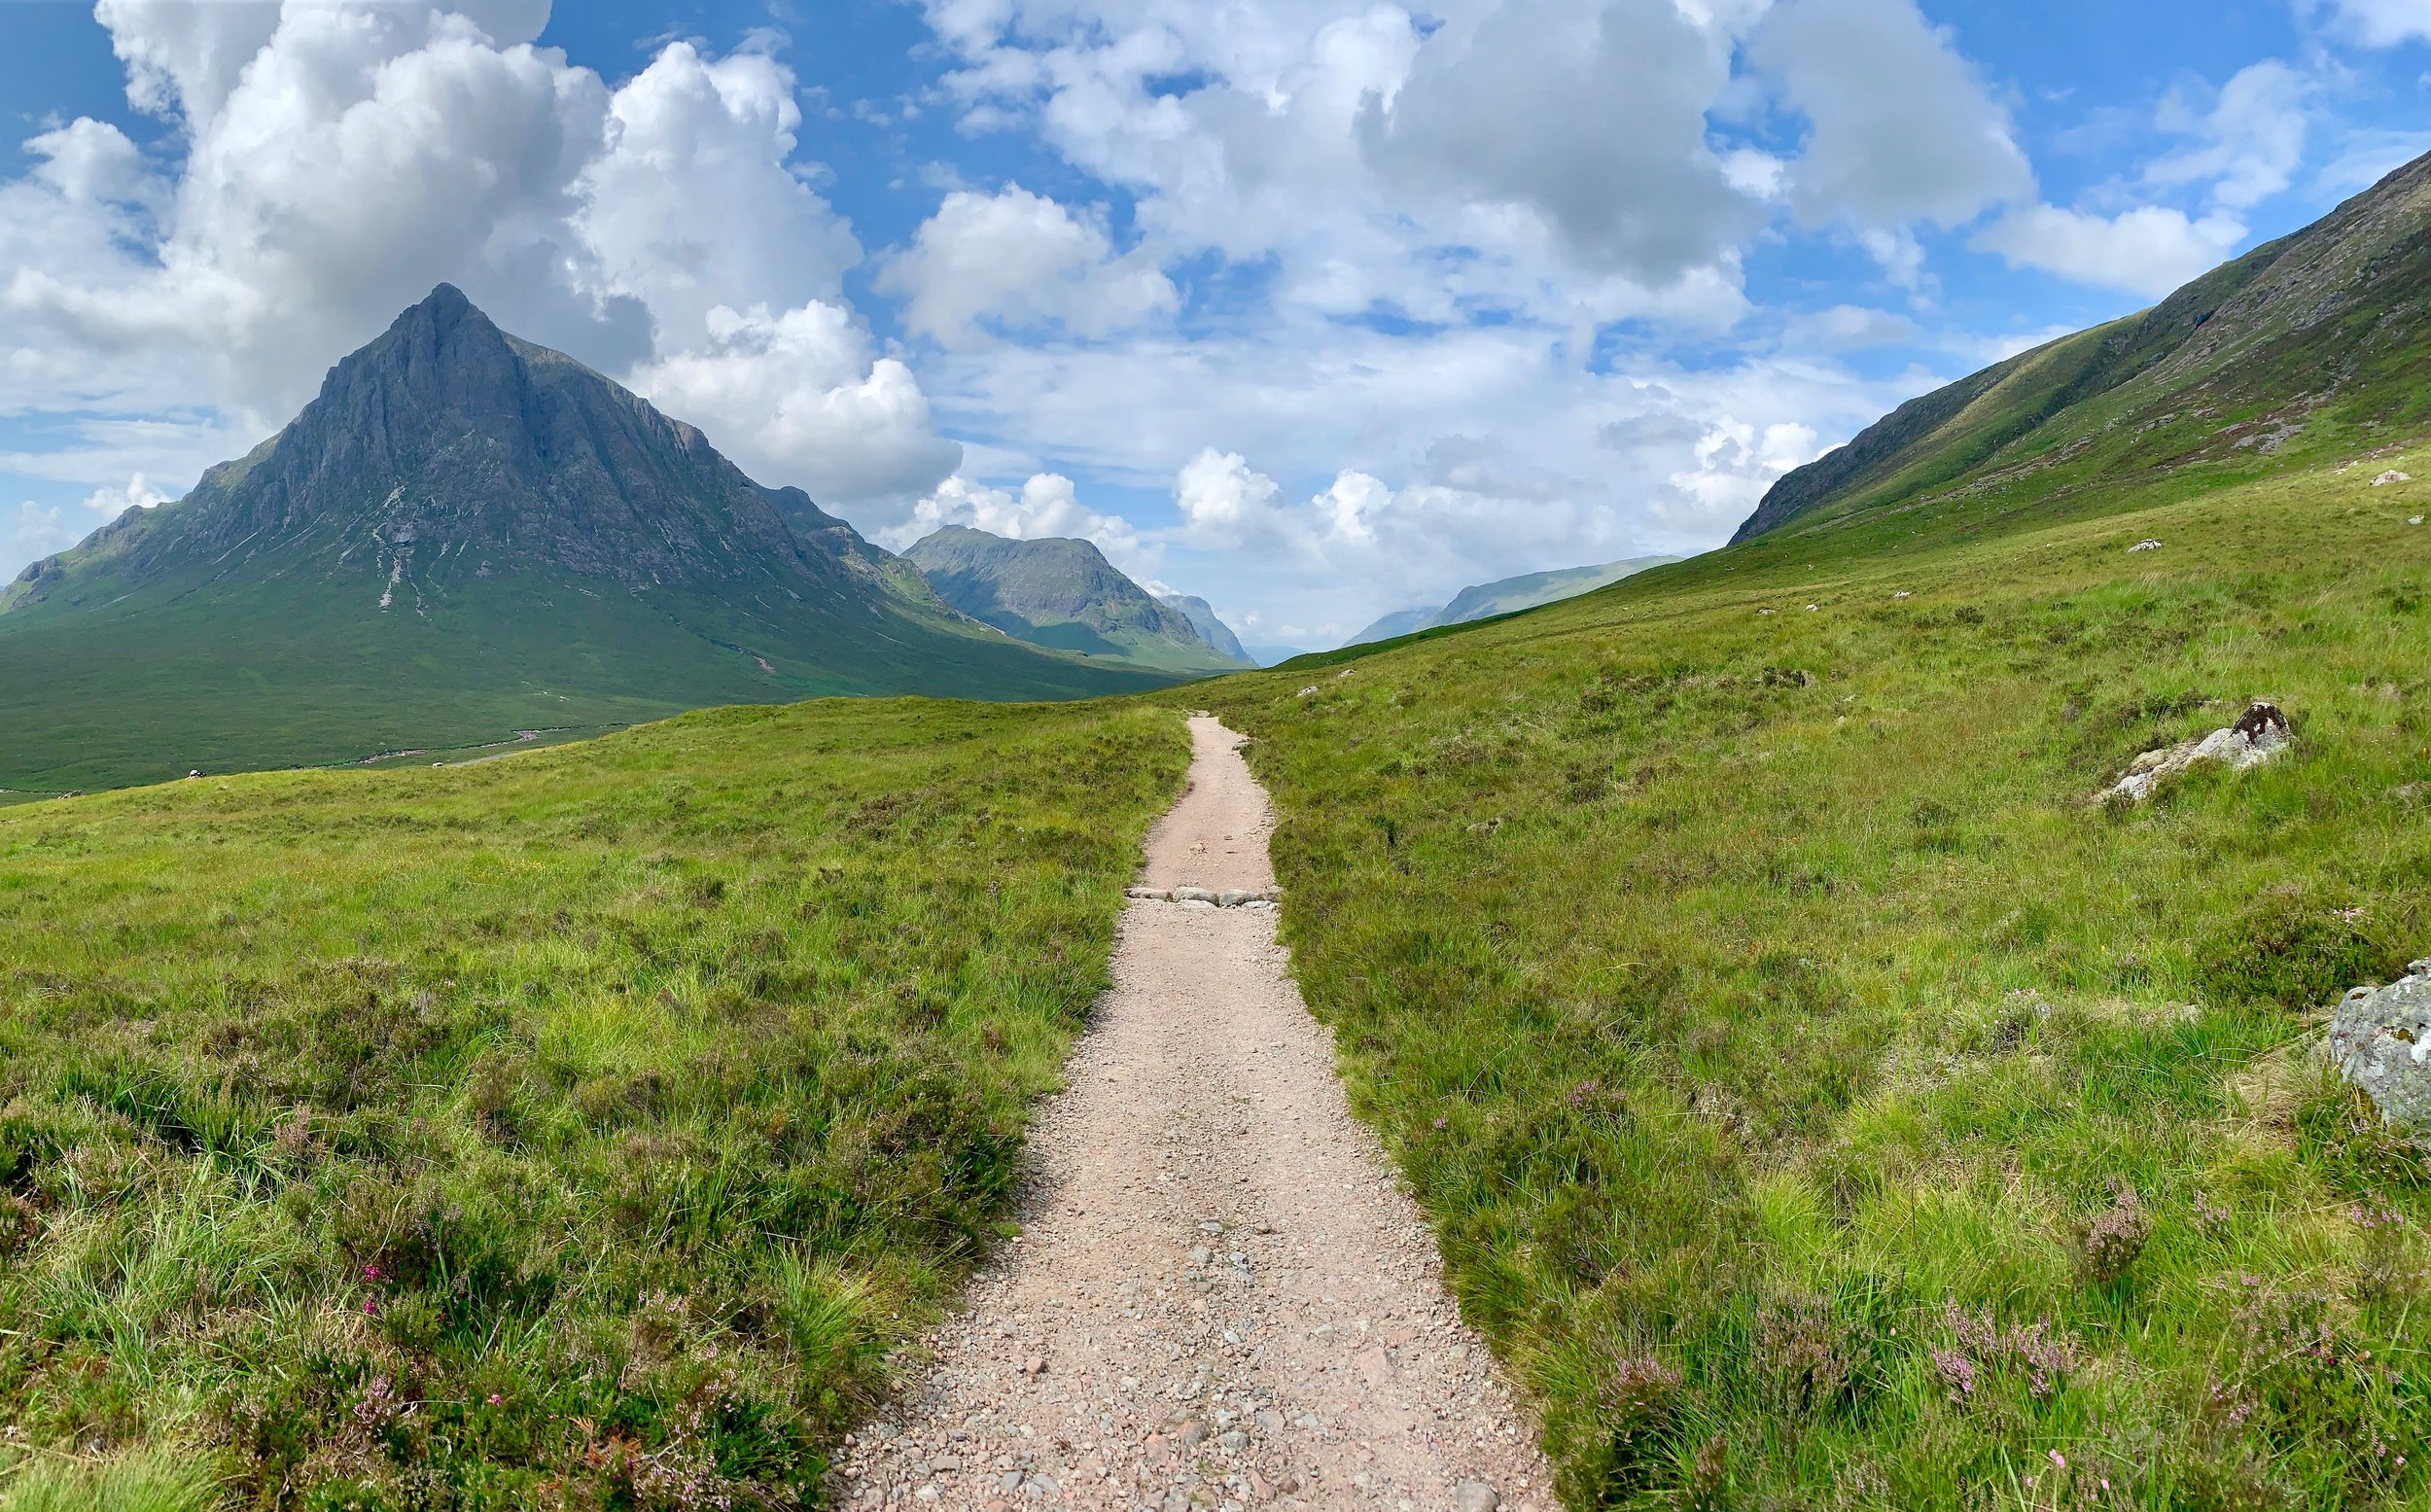 The Way looking NW with Stob Dearg on the left